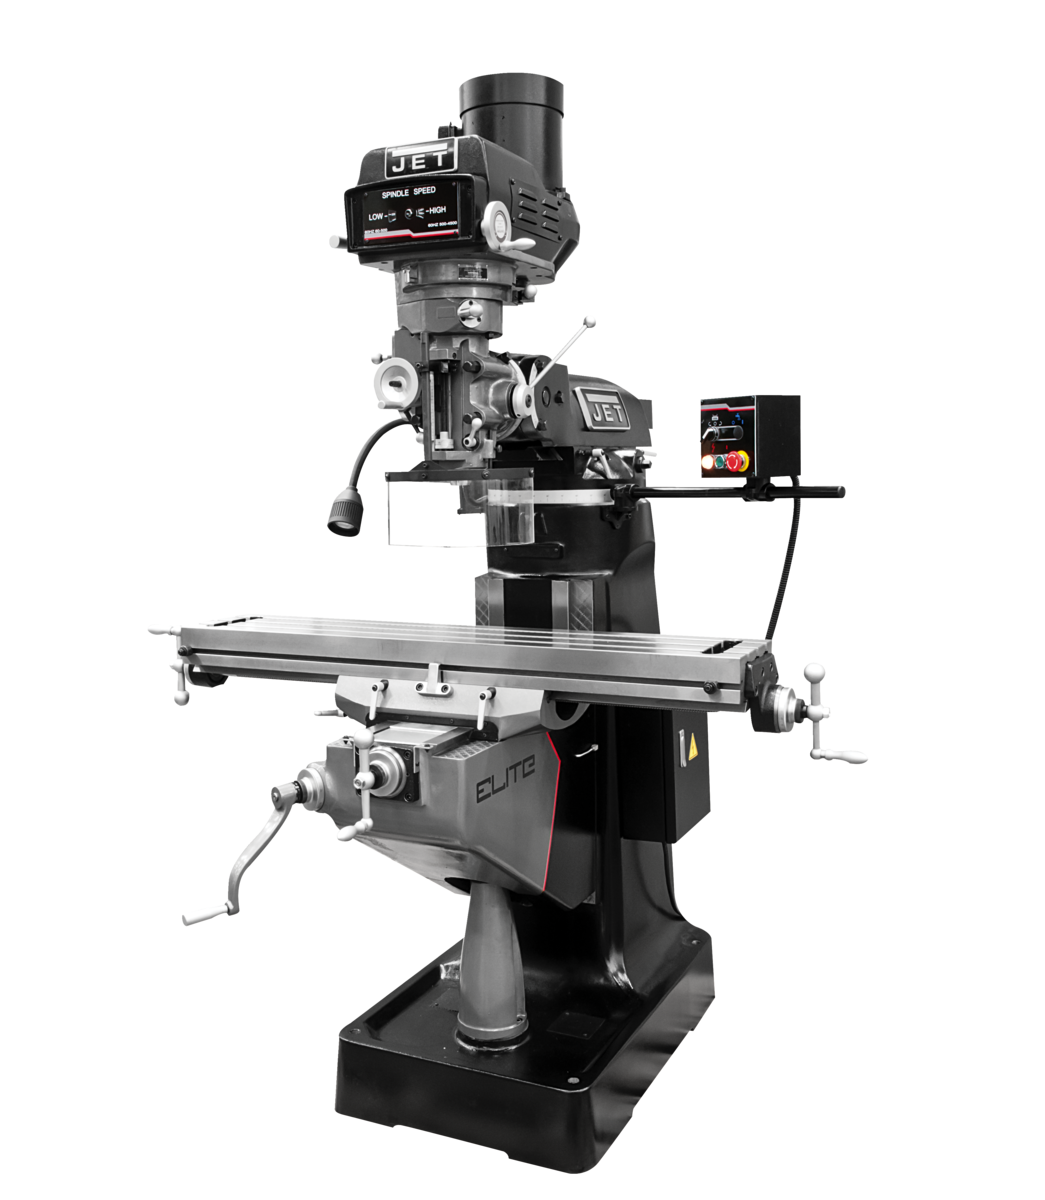 ETM-949 Mill with 3-Axis Newall DP700 (Knee) DRO and Servo X, Y-Axis Powerfeeds and USA Air Powered Draw Bar